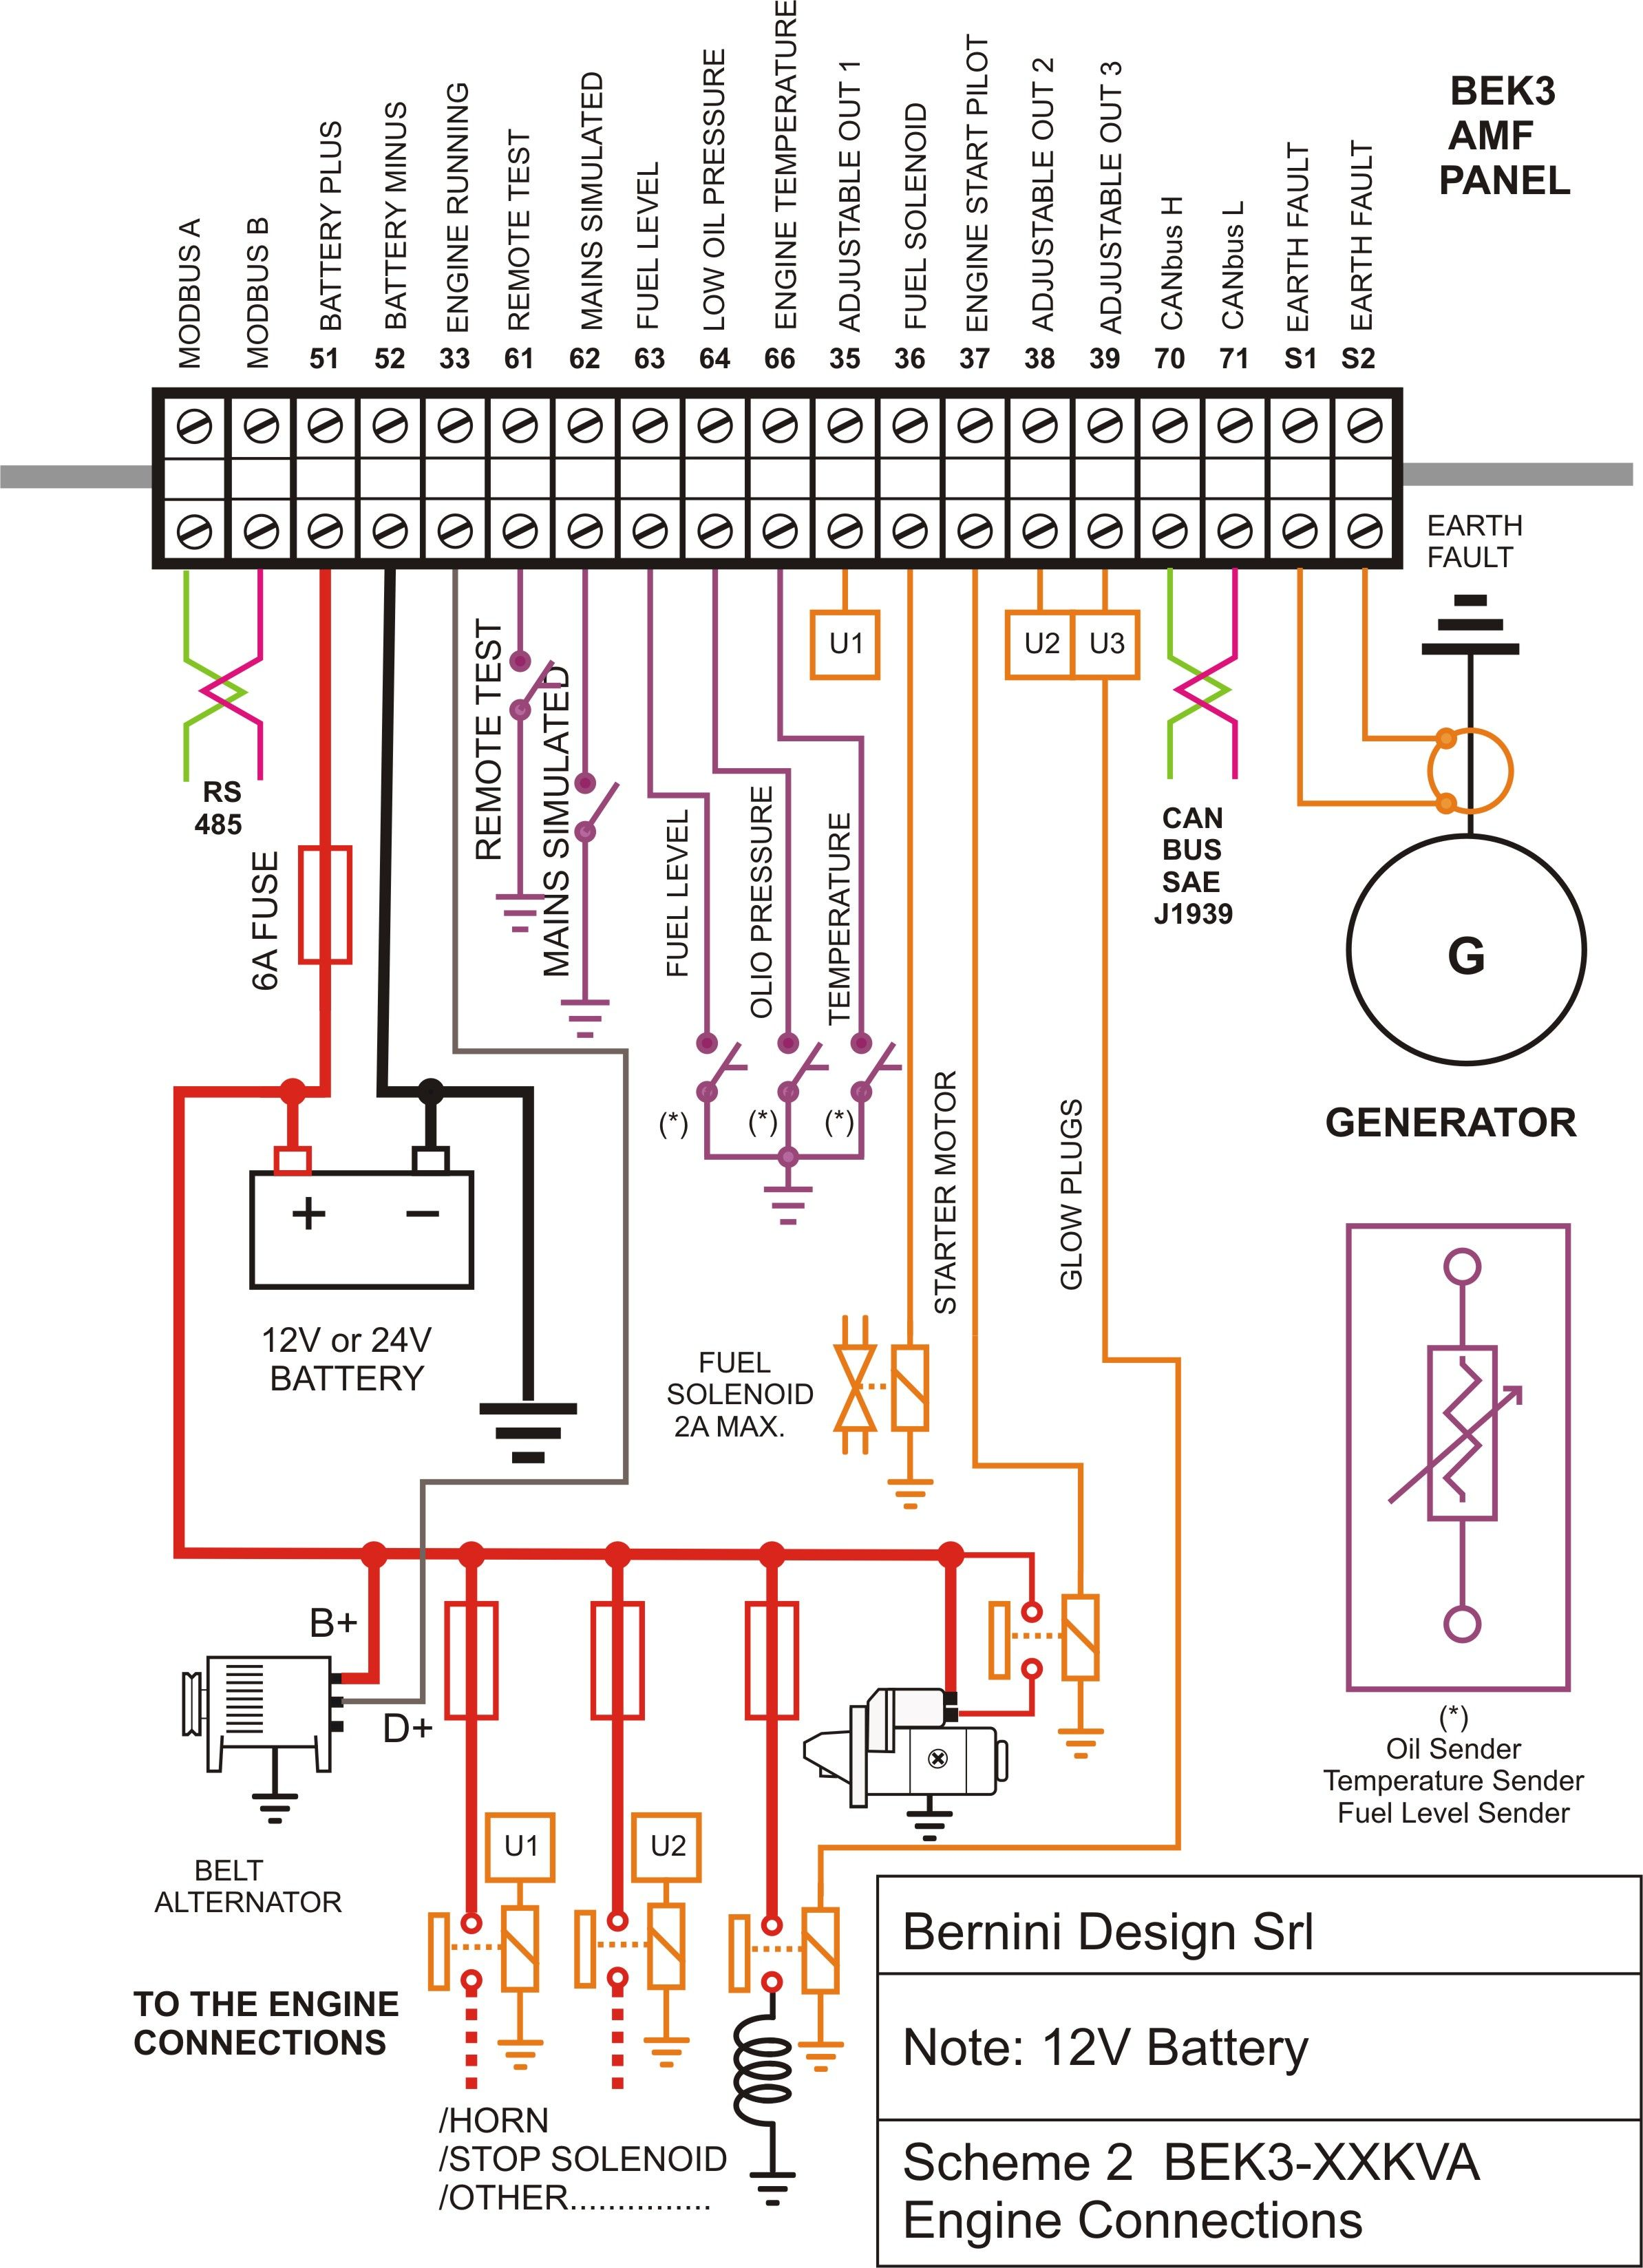 diesel generator control panel wiring diagram engine connections Electrical Current Circuit Diagram diesel generator control panel wiring diagram engine connections